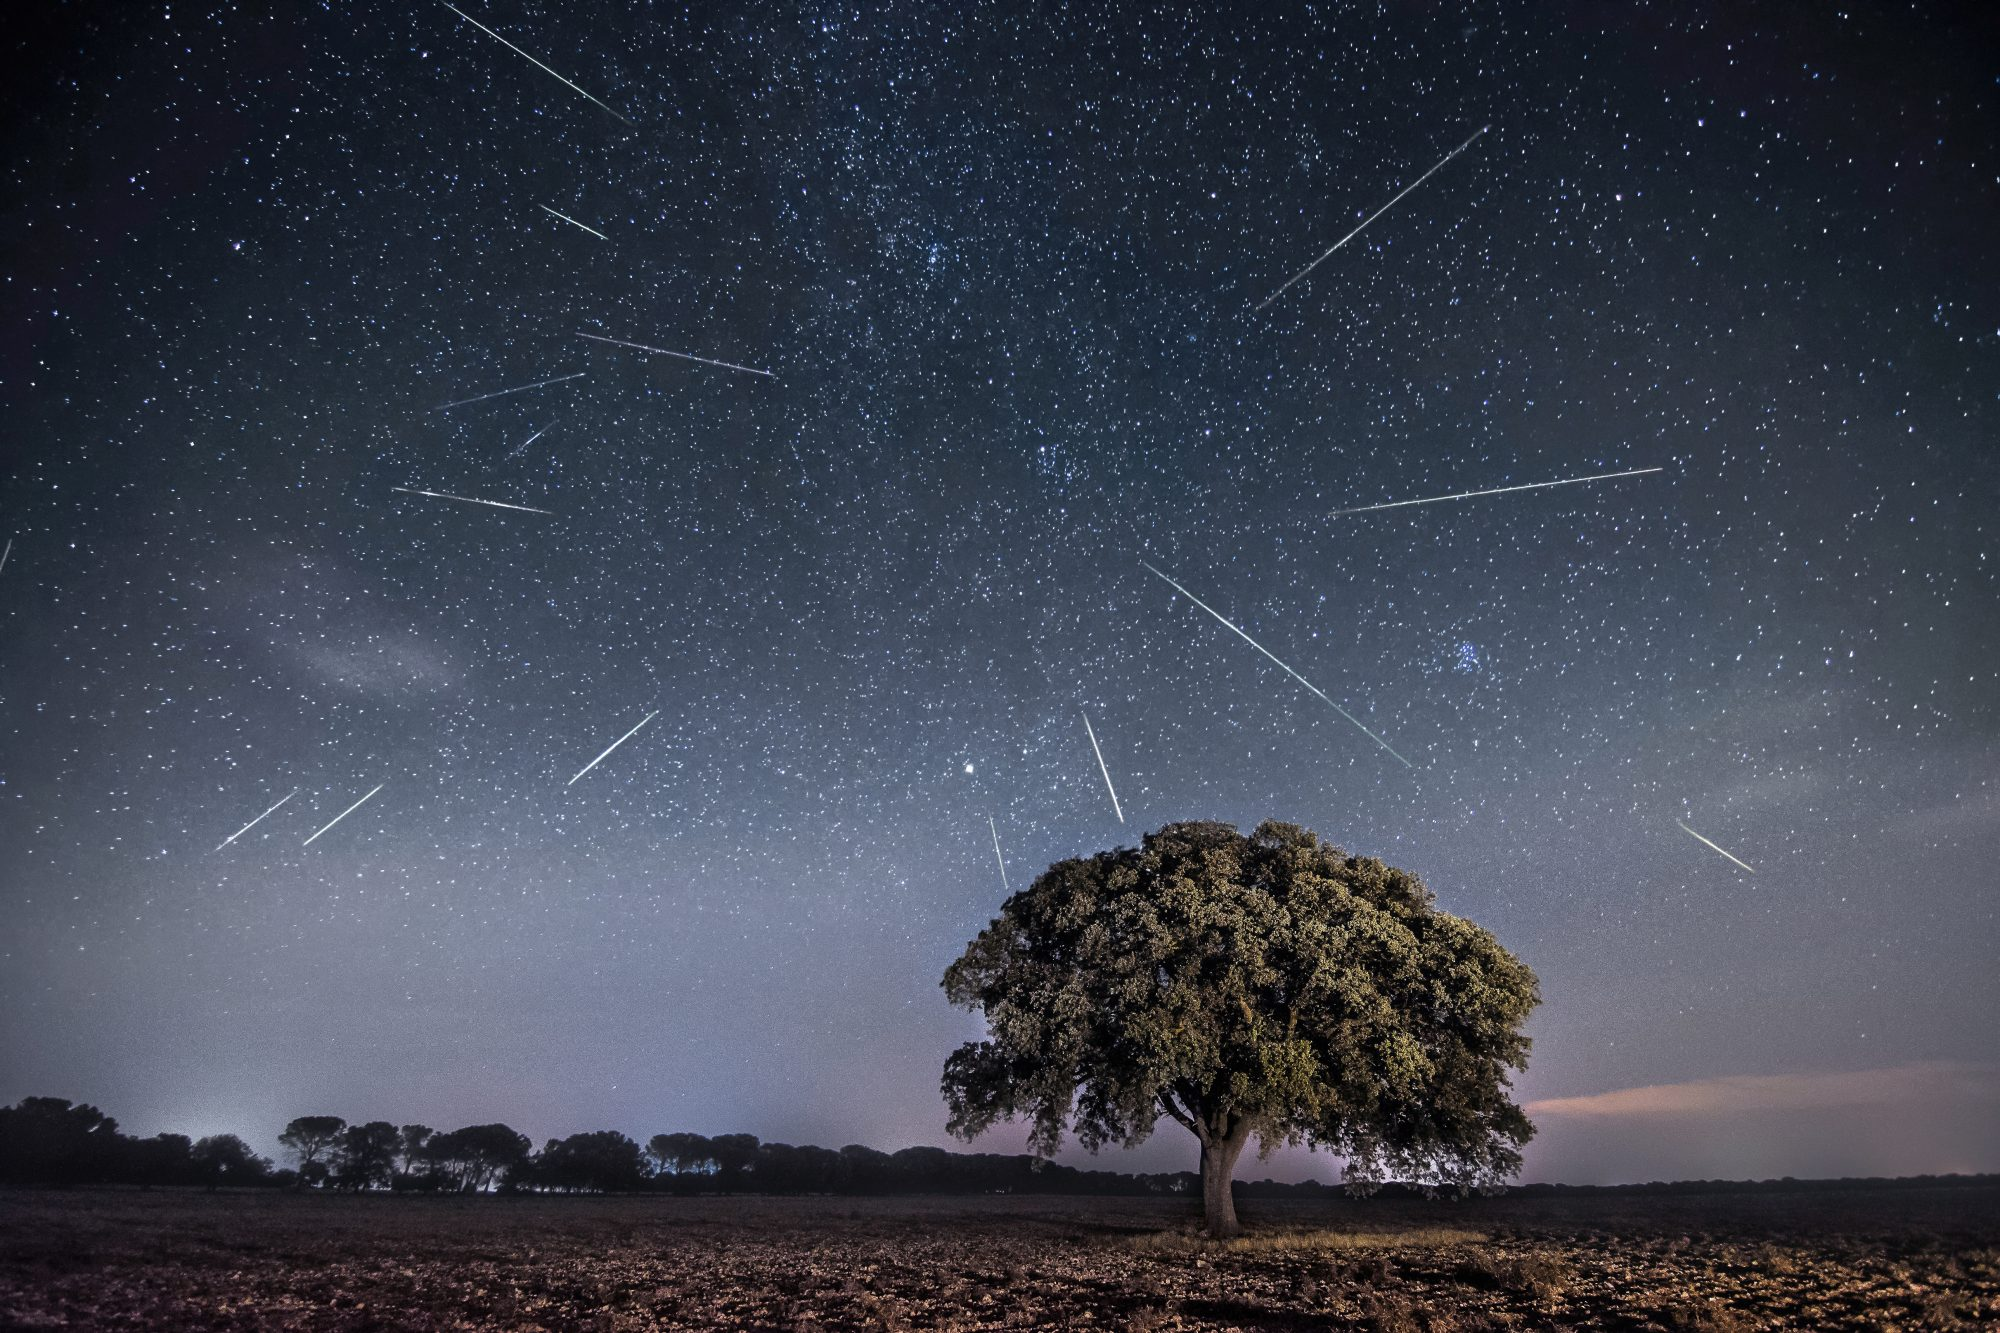 perseids meteor shower behind a tree in the night sky